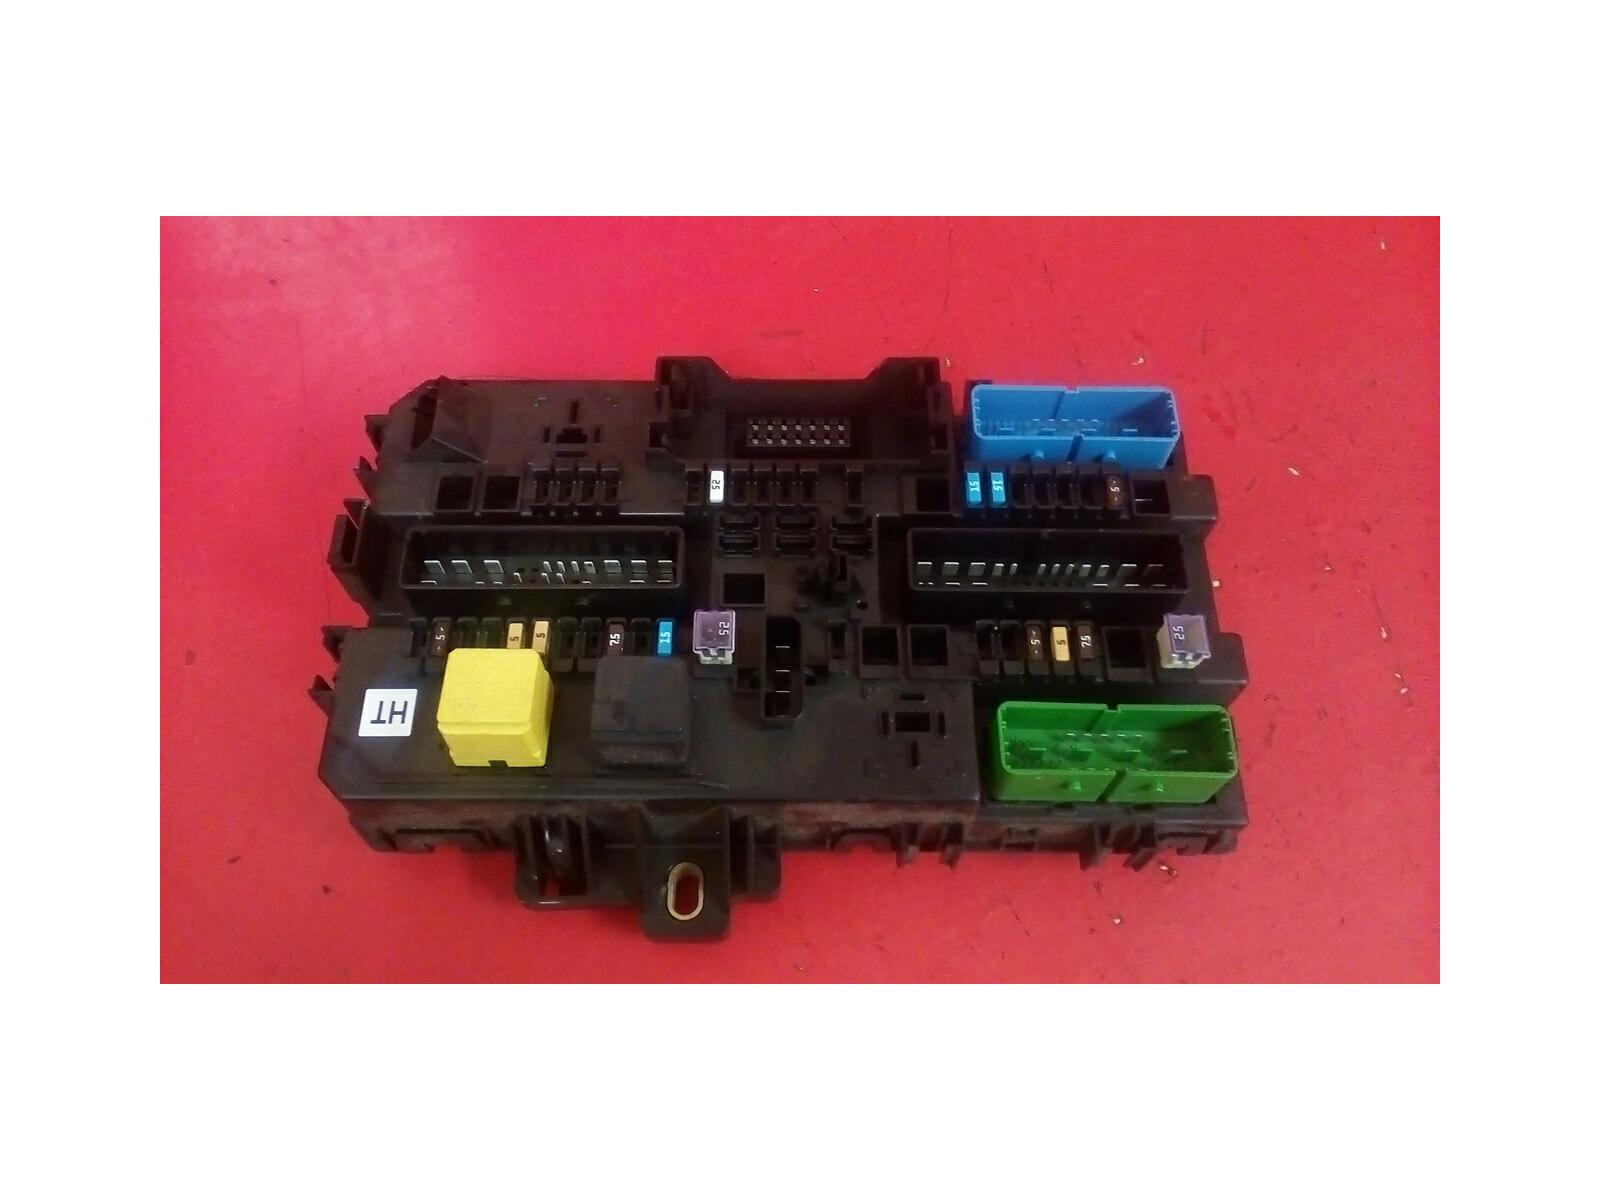 Vauxhall Astra Breeze 2008 Fuse Box Trusted Wiring Diagram Vauxhall Astra  Fuse Box 2008